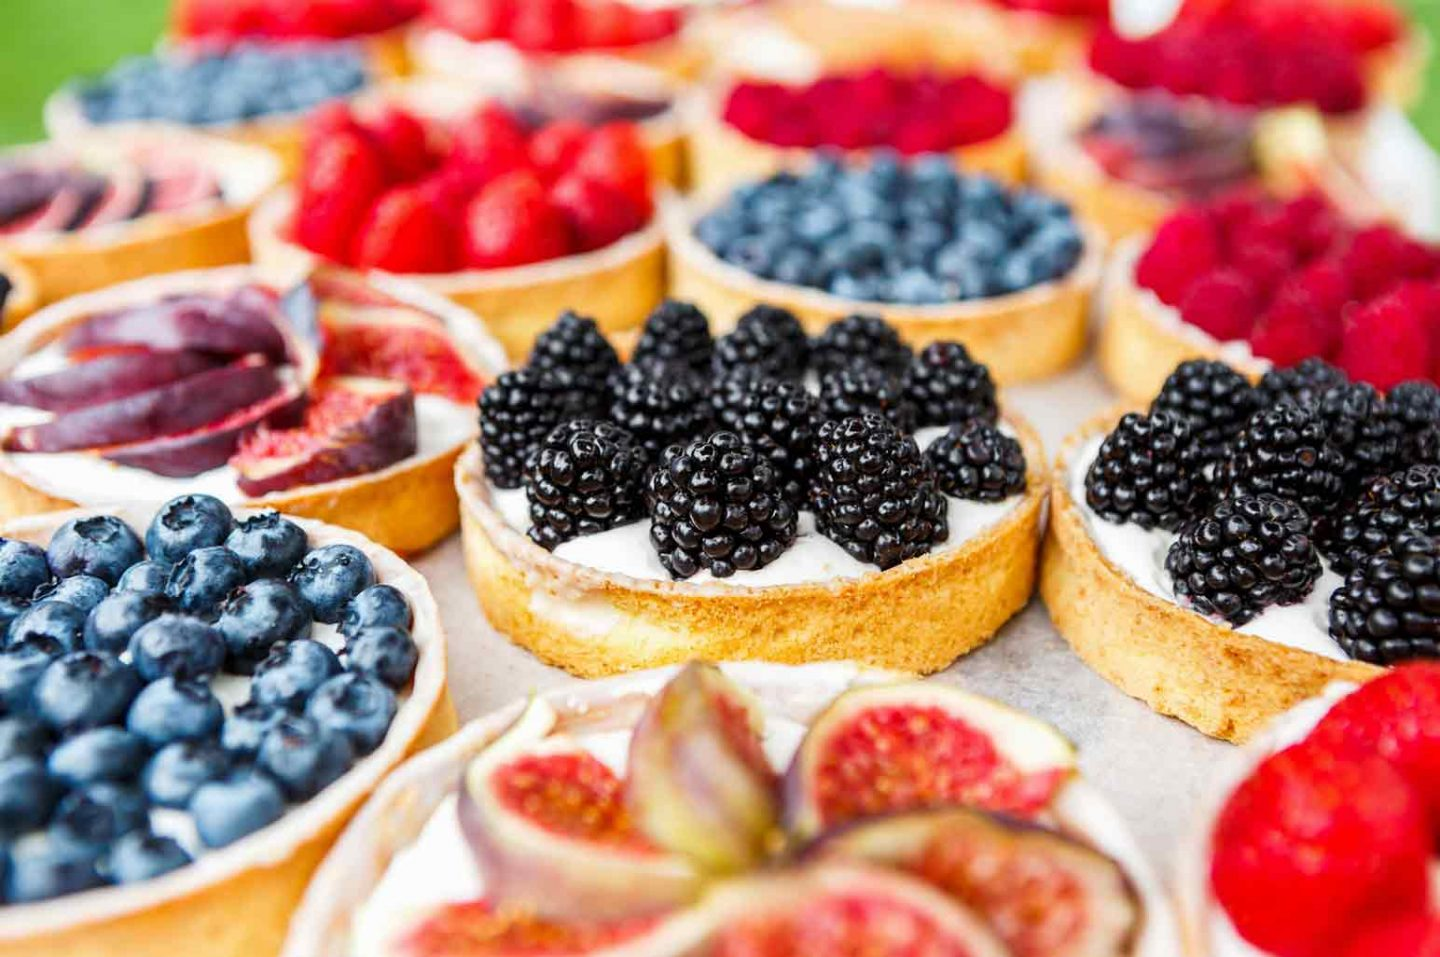 Travel Guide For Those With A Sweet Tooth